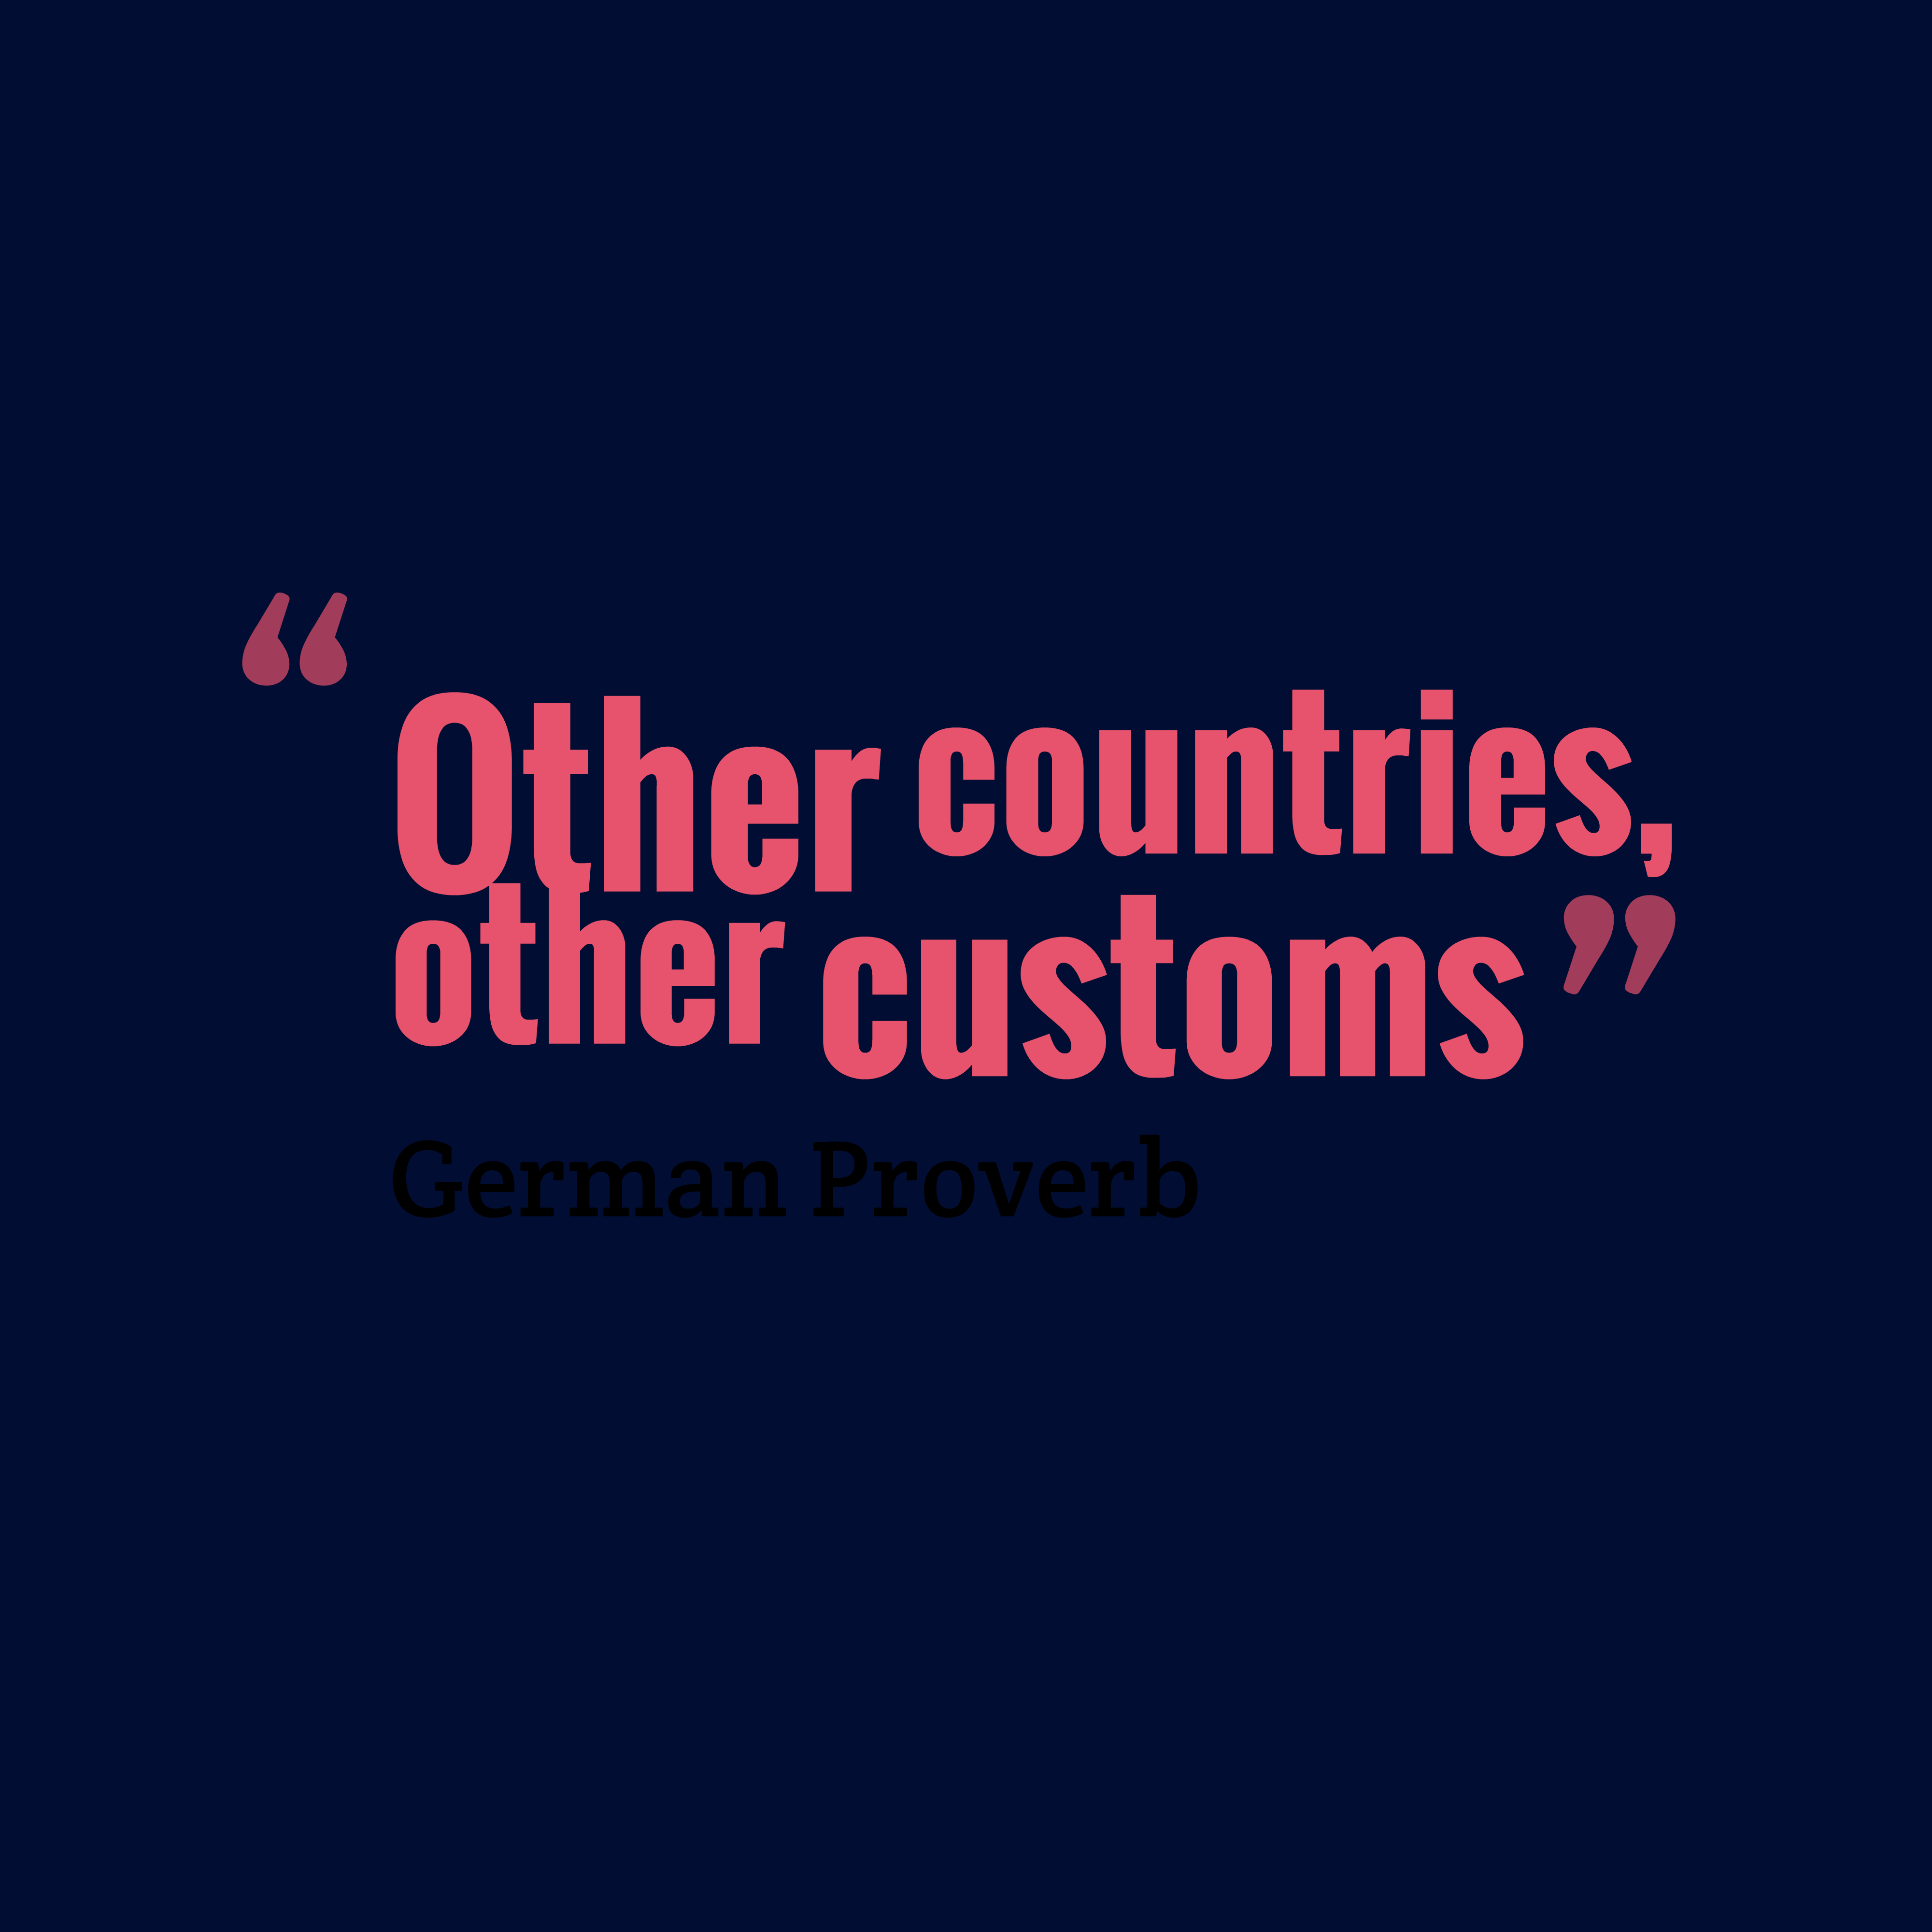 Quotes image of Other countries, other customs